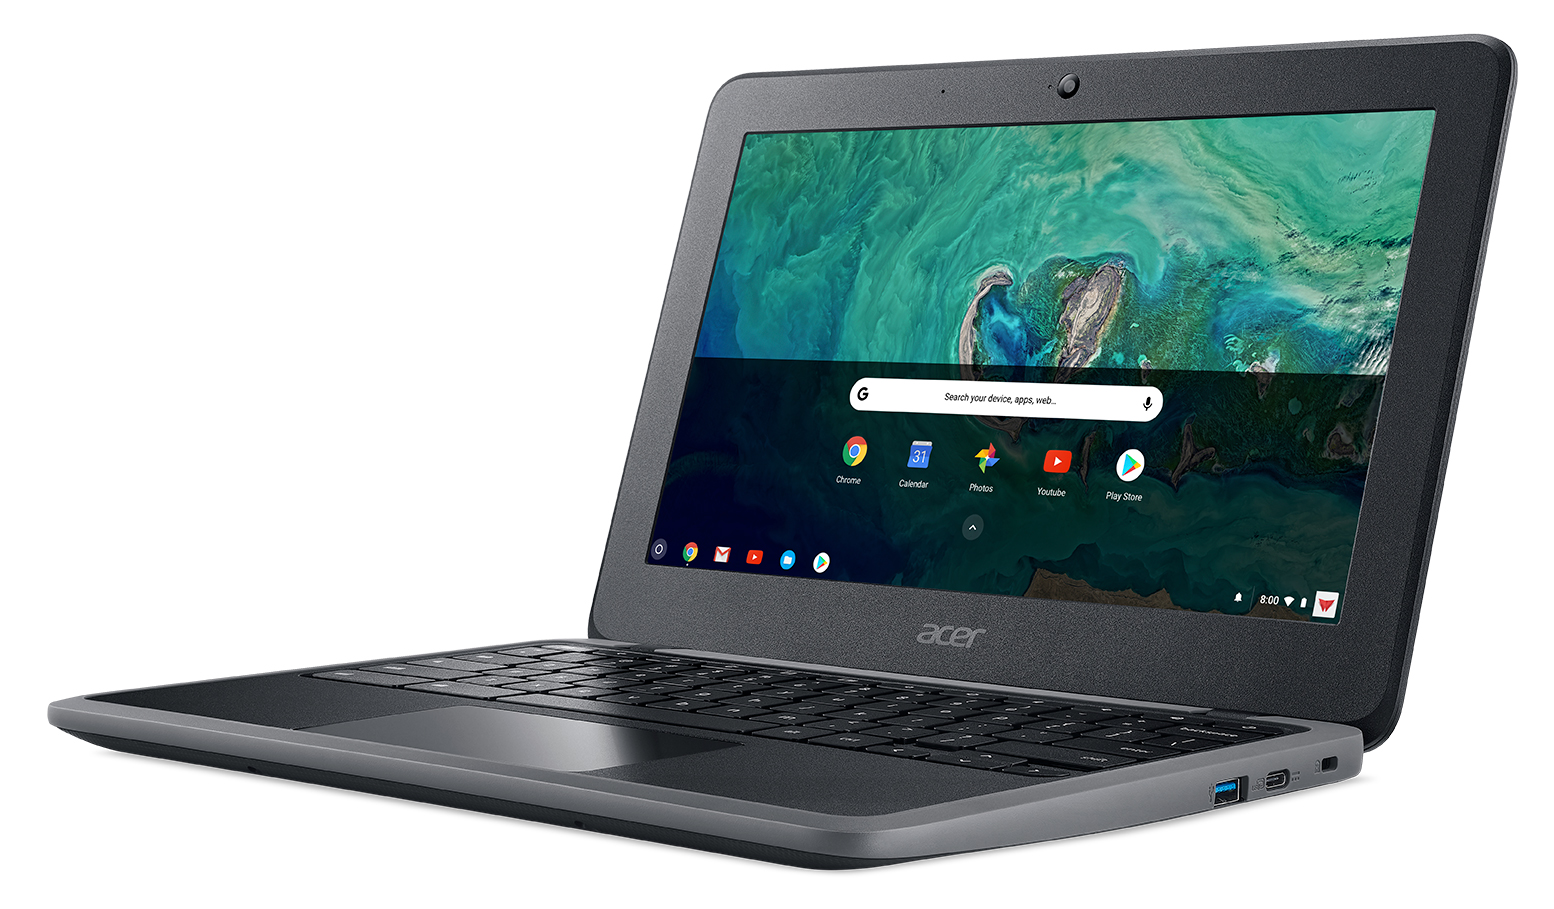 Acer unveils two refreshed Chromebook lines for schools and everyday laptop users